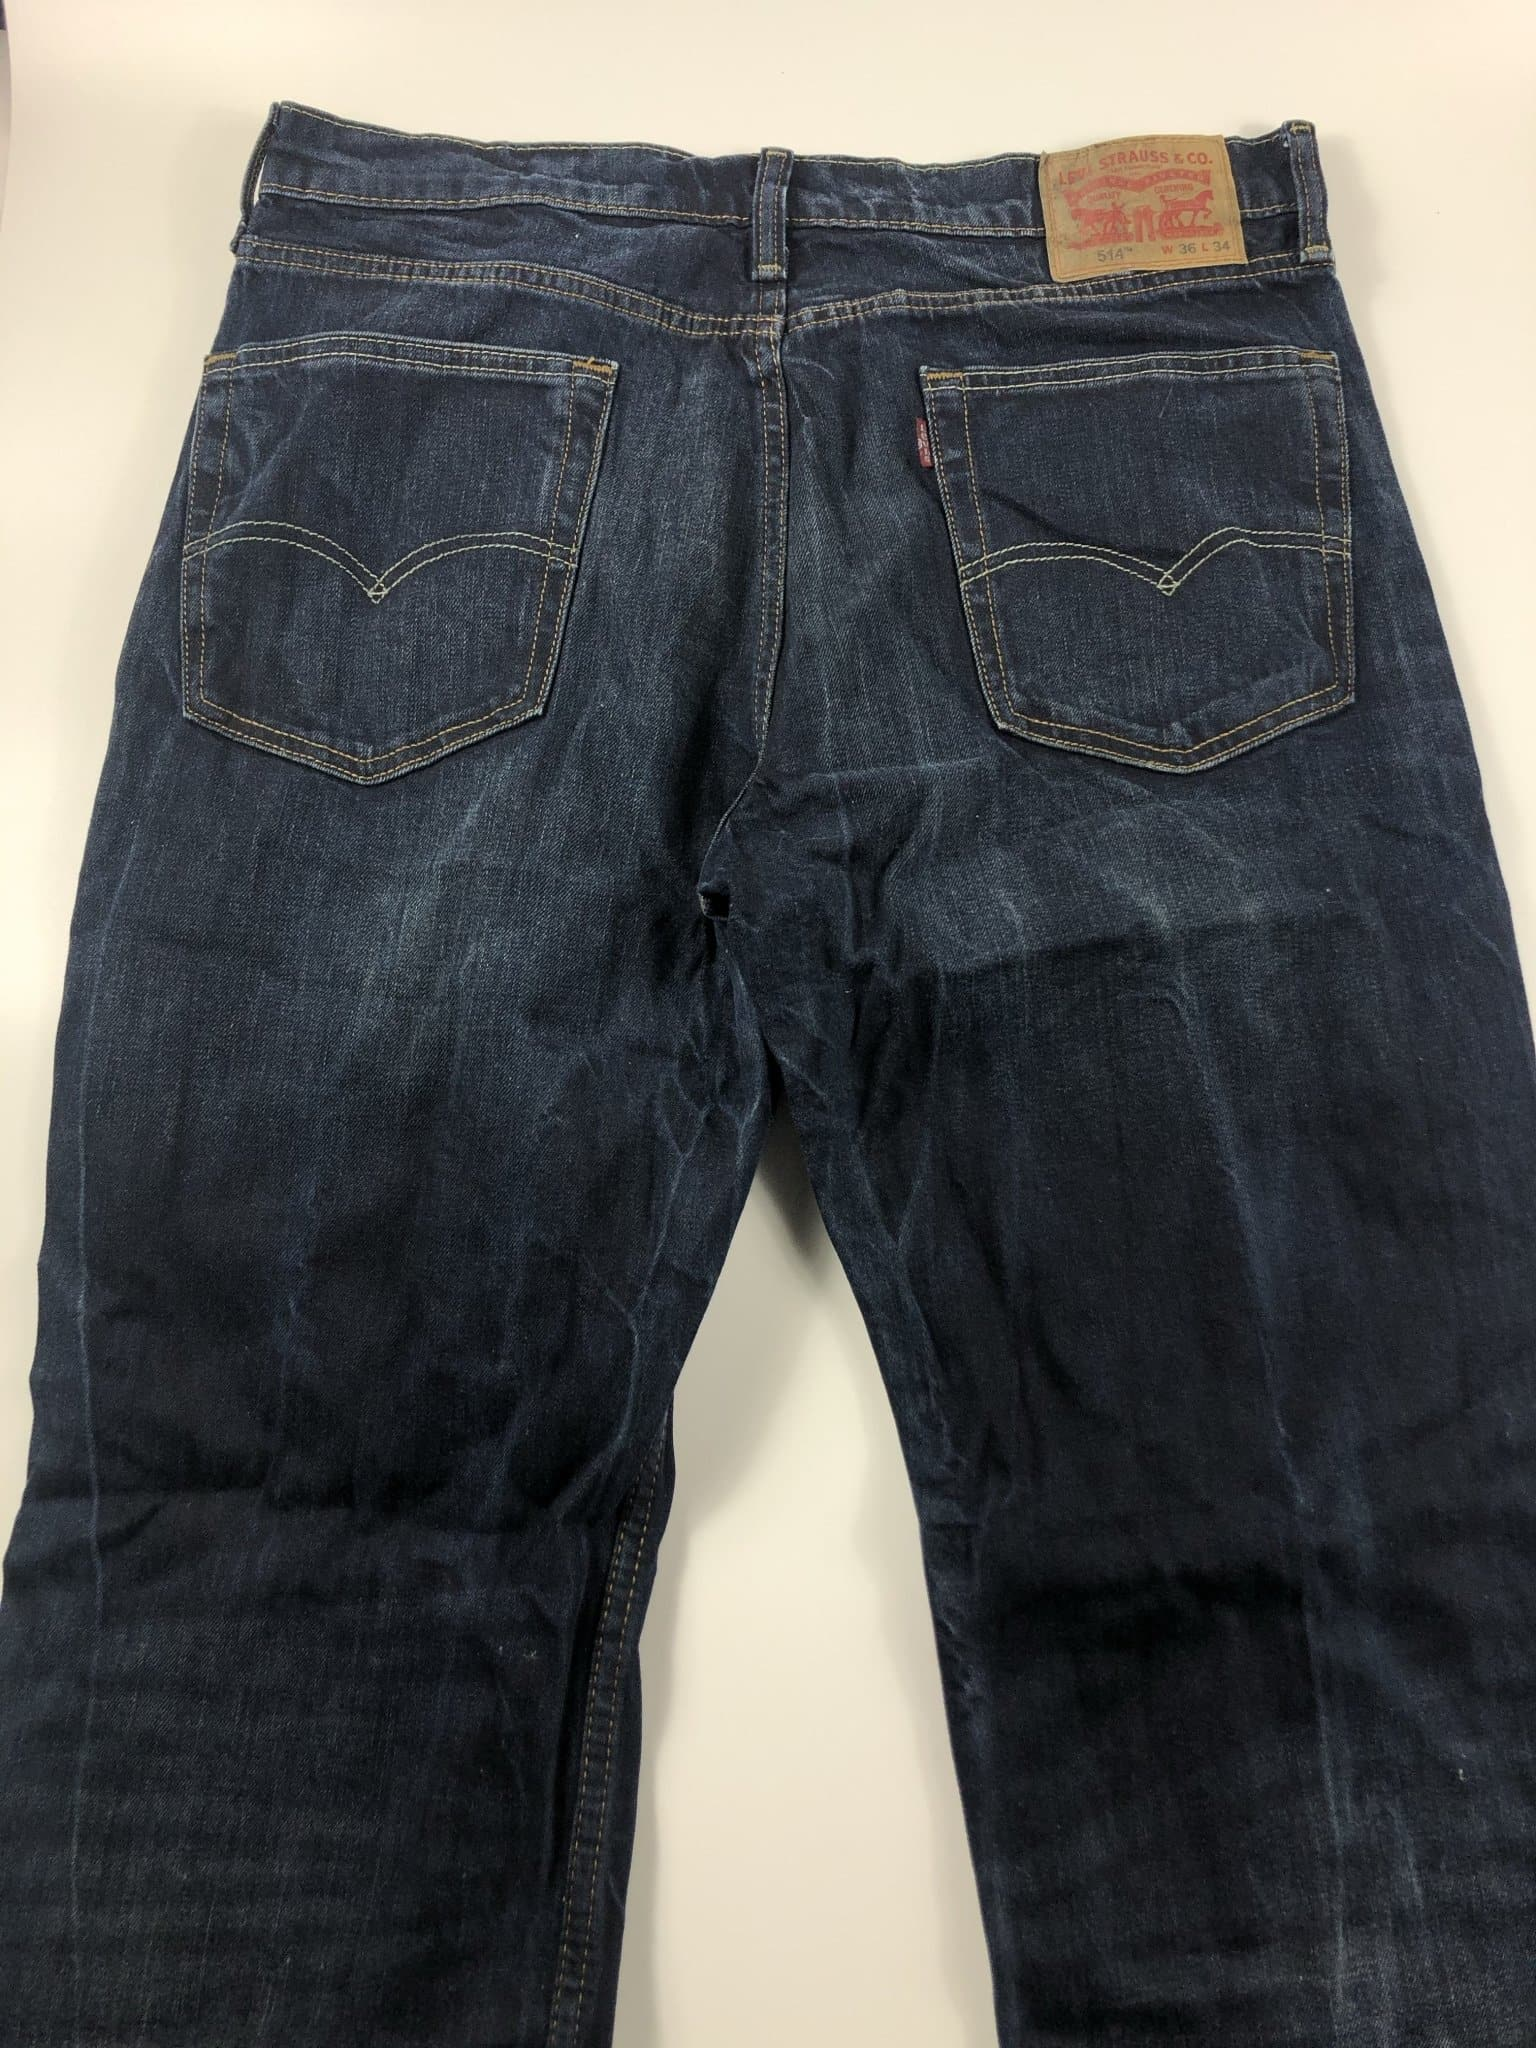 Vintage Levi's Classic 514 Jeans W36 L34 (I11) - Discounted Deals UK